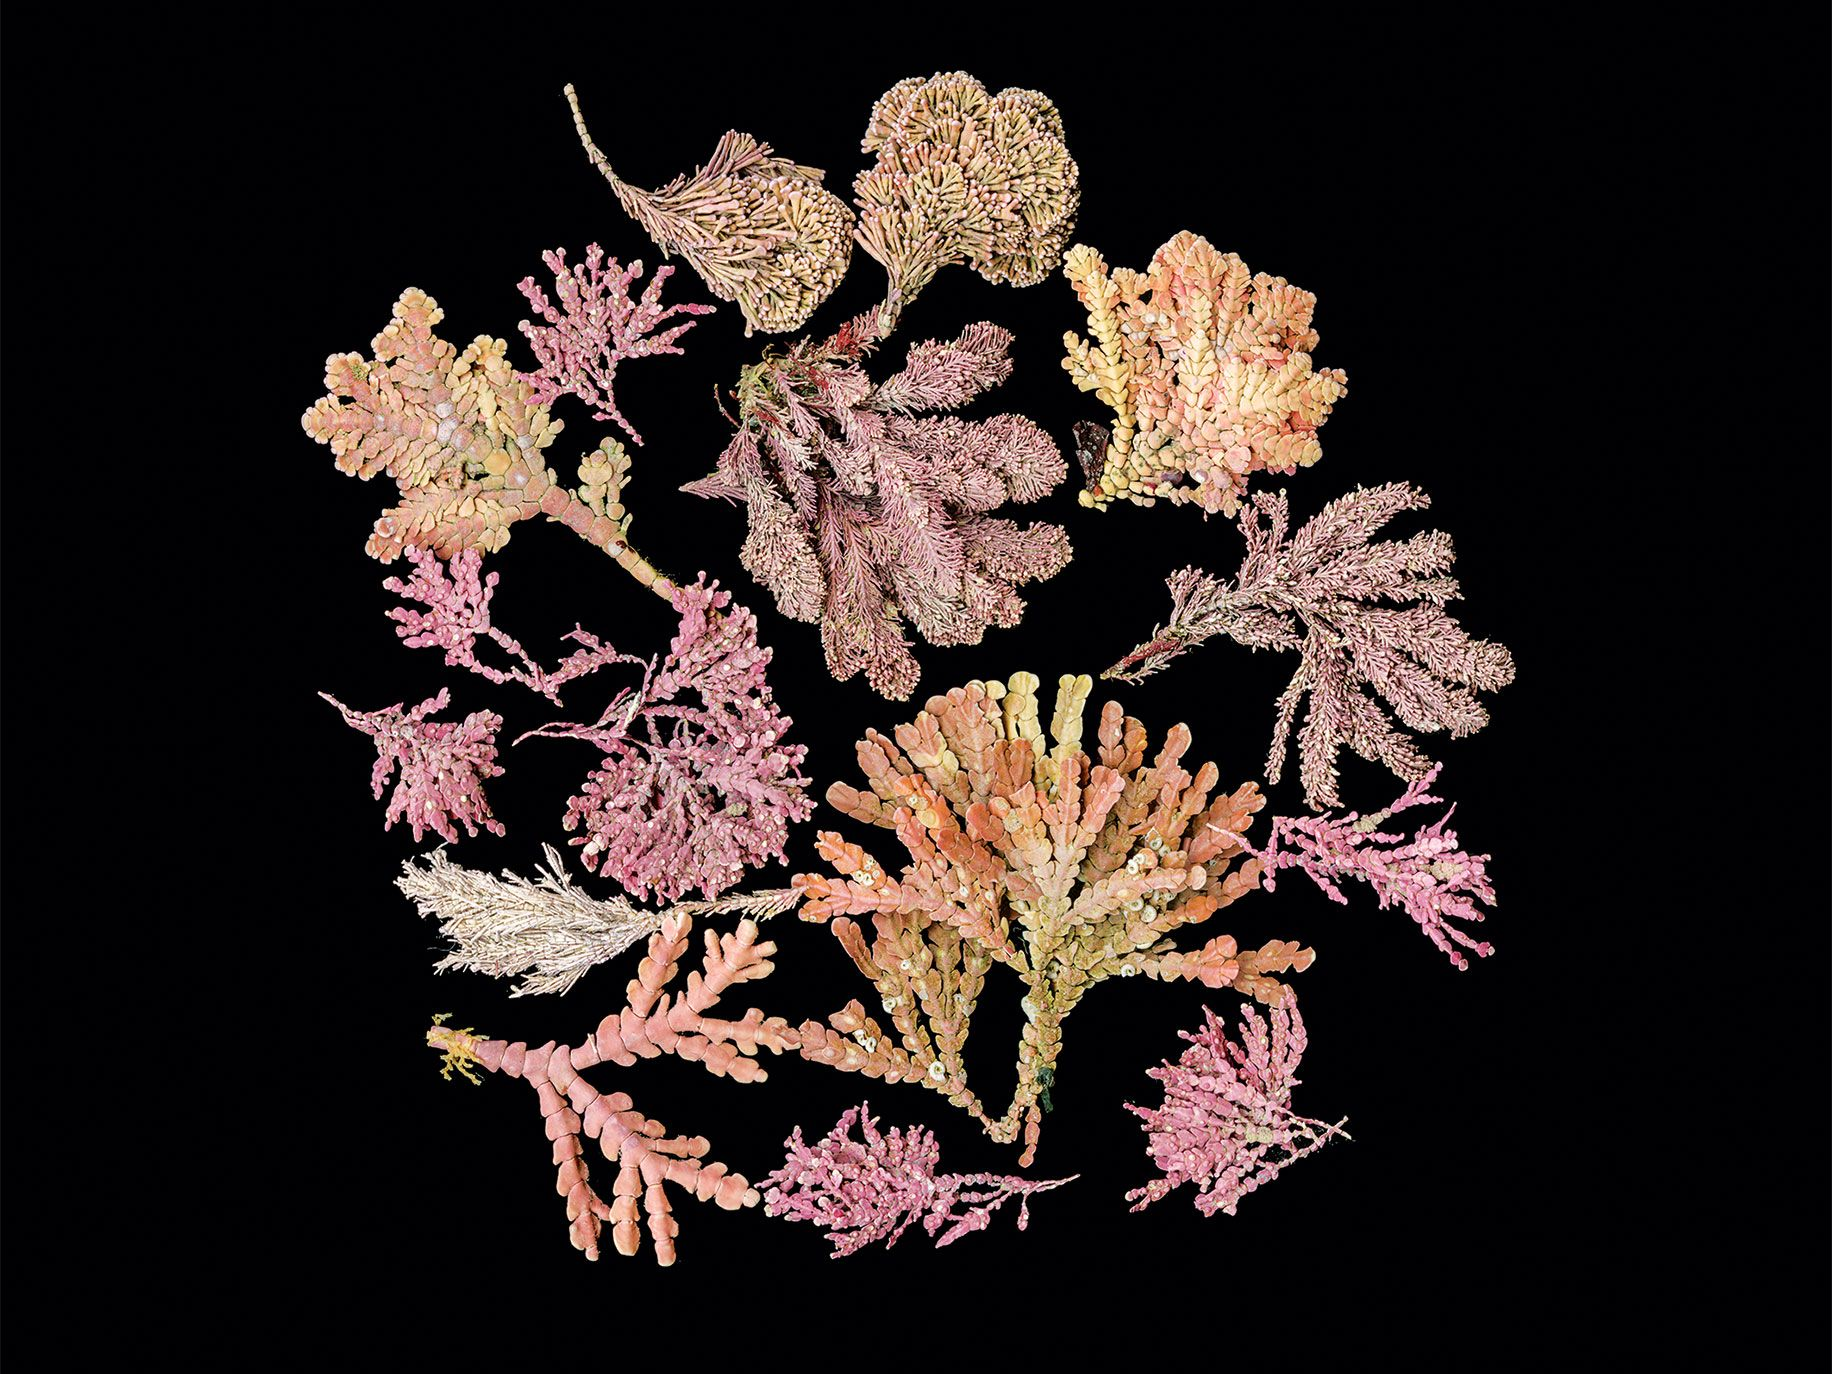 Articulated red coralline algae, various types.